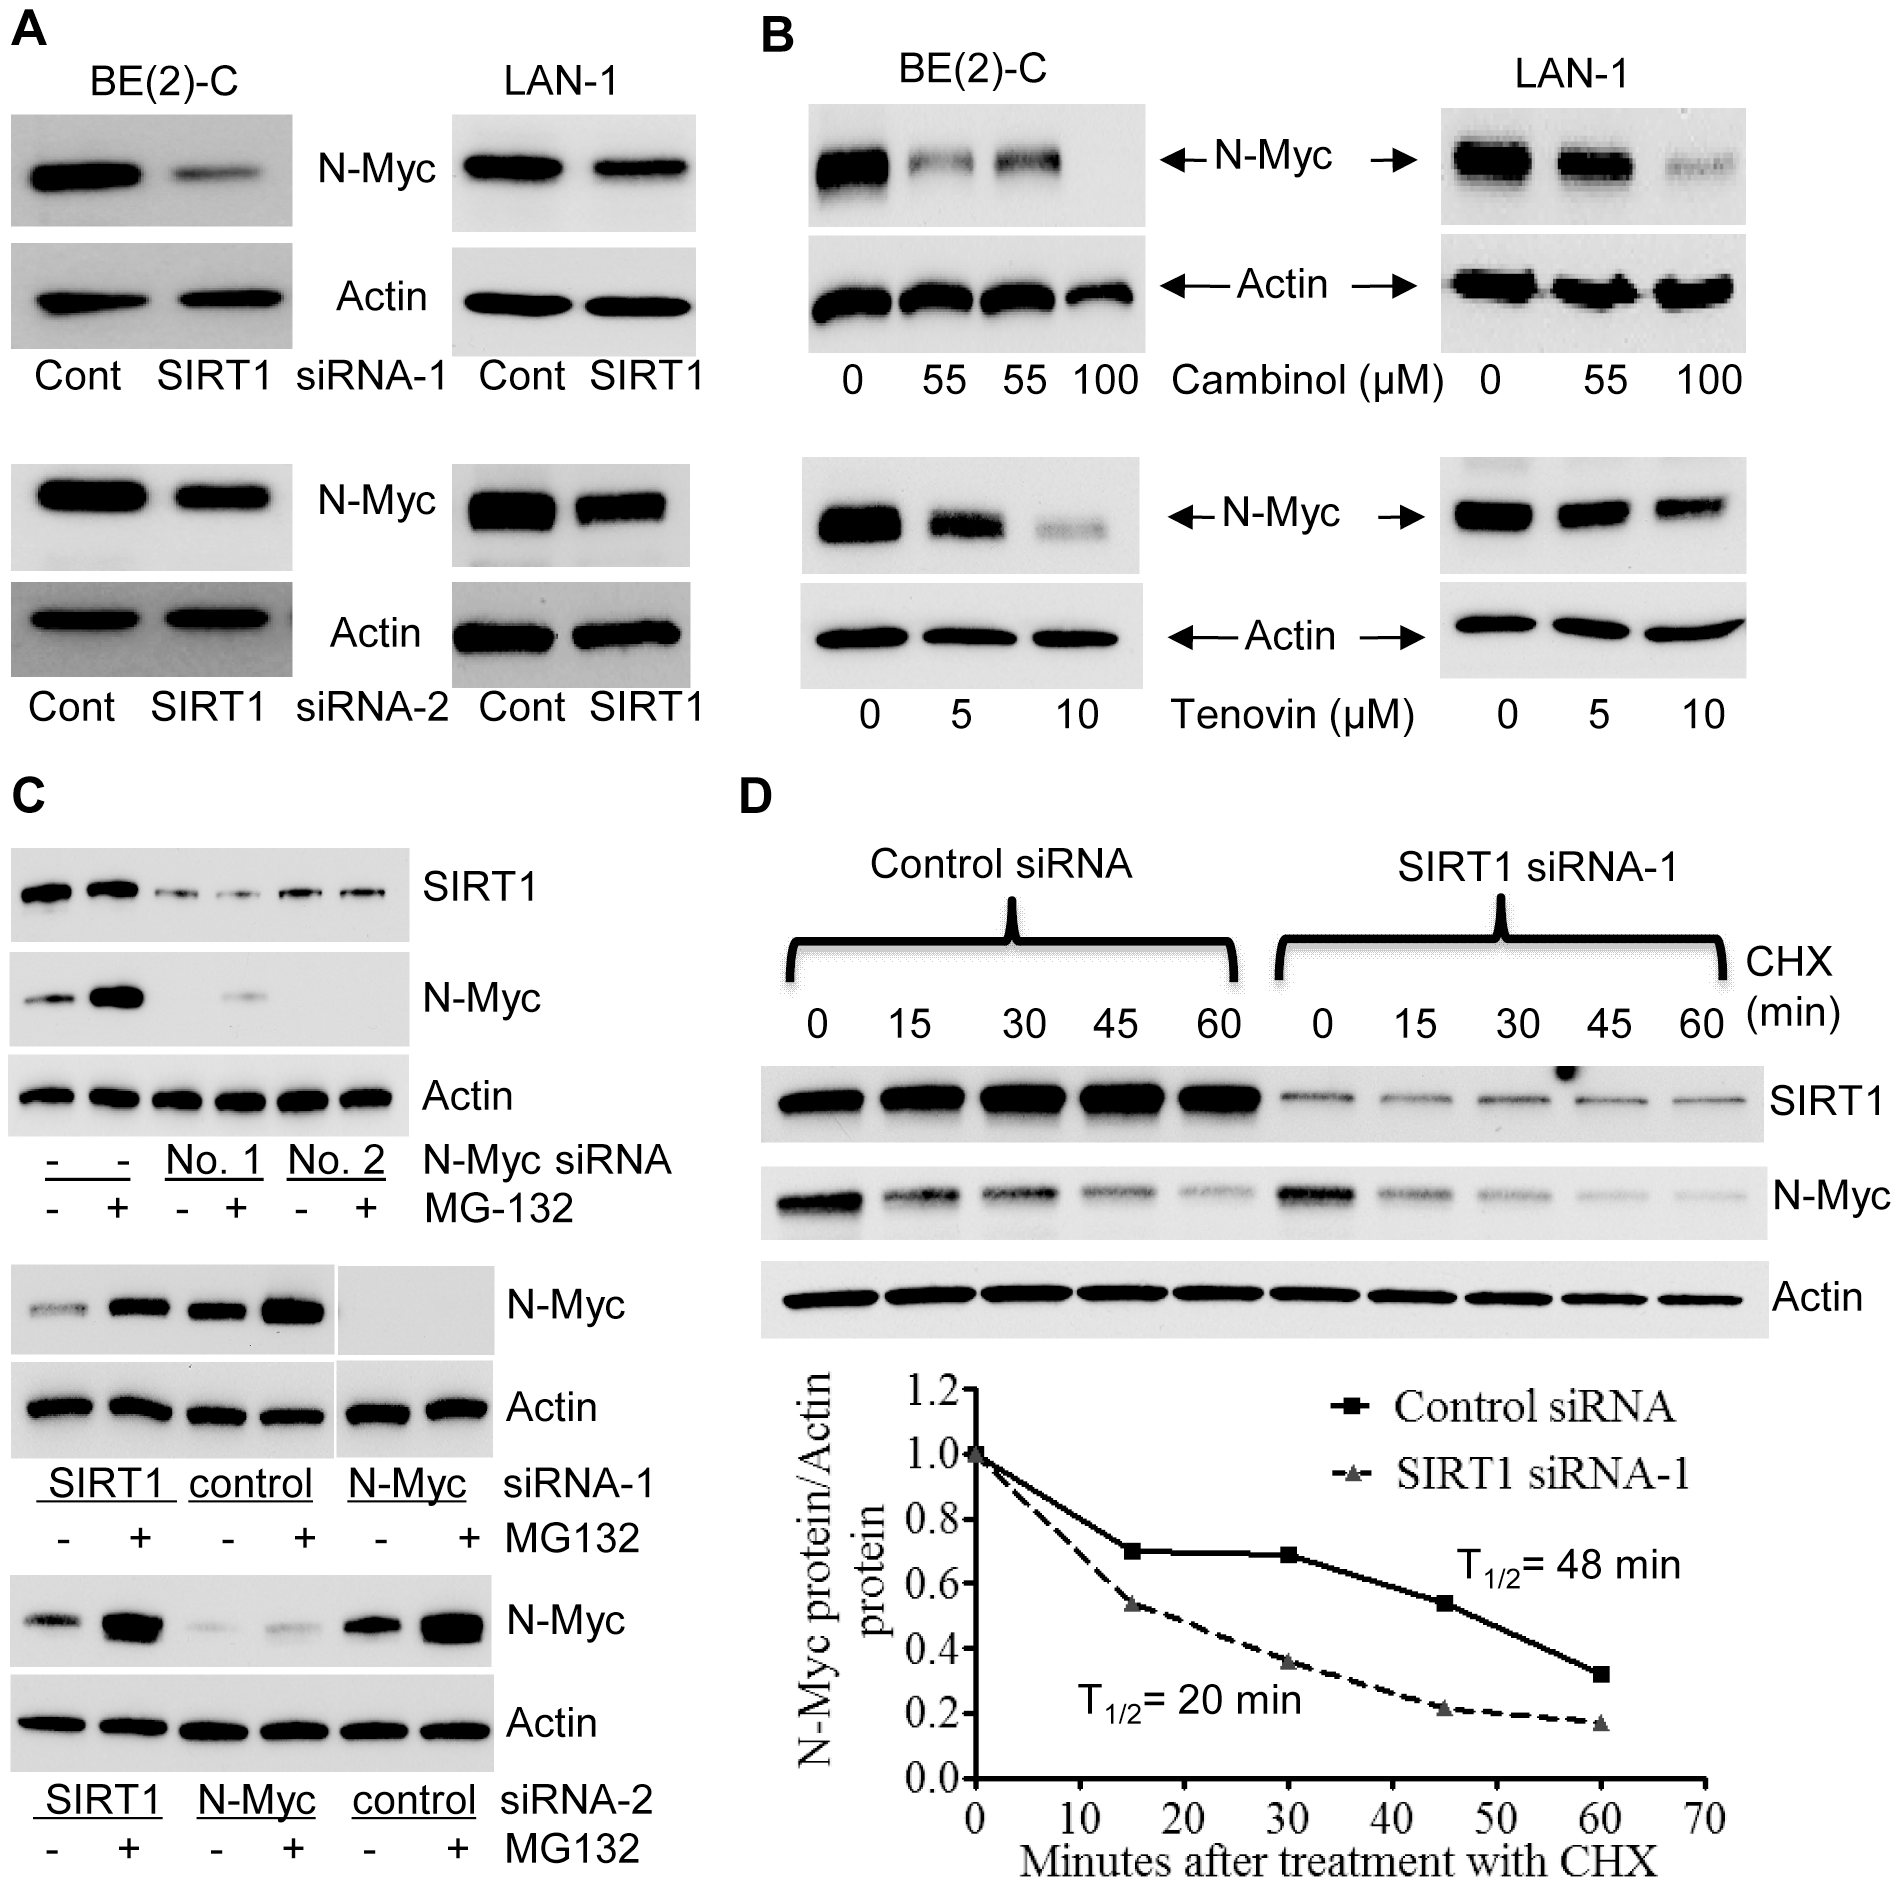 SIRT1 up-regulates N-Myc protein expression by blocking its degradation.